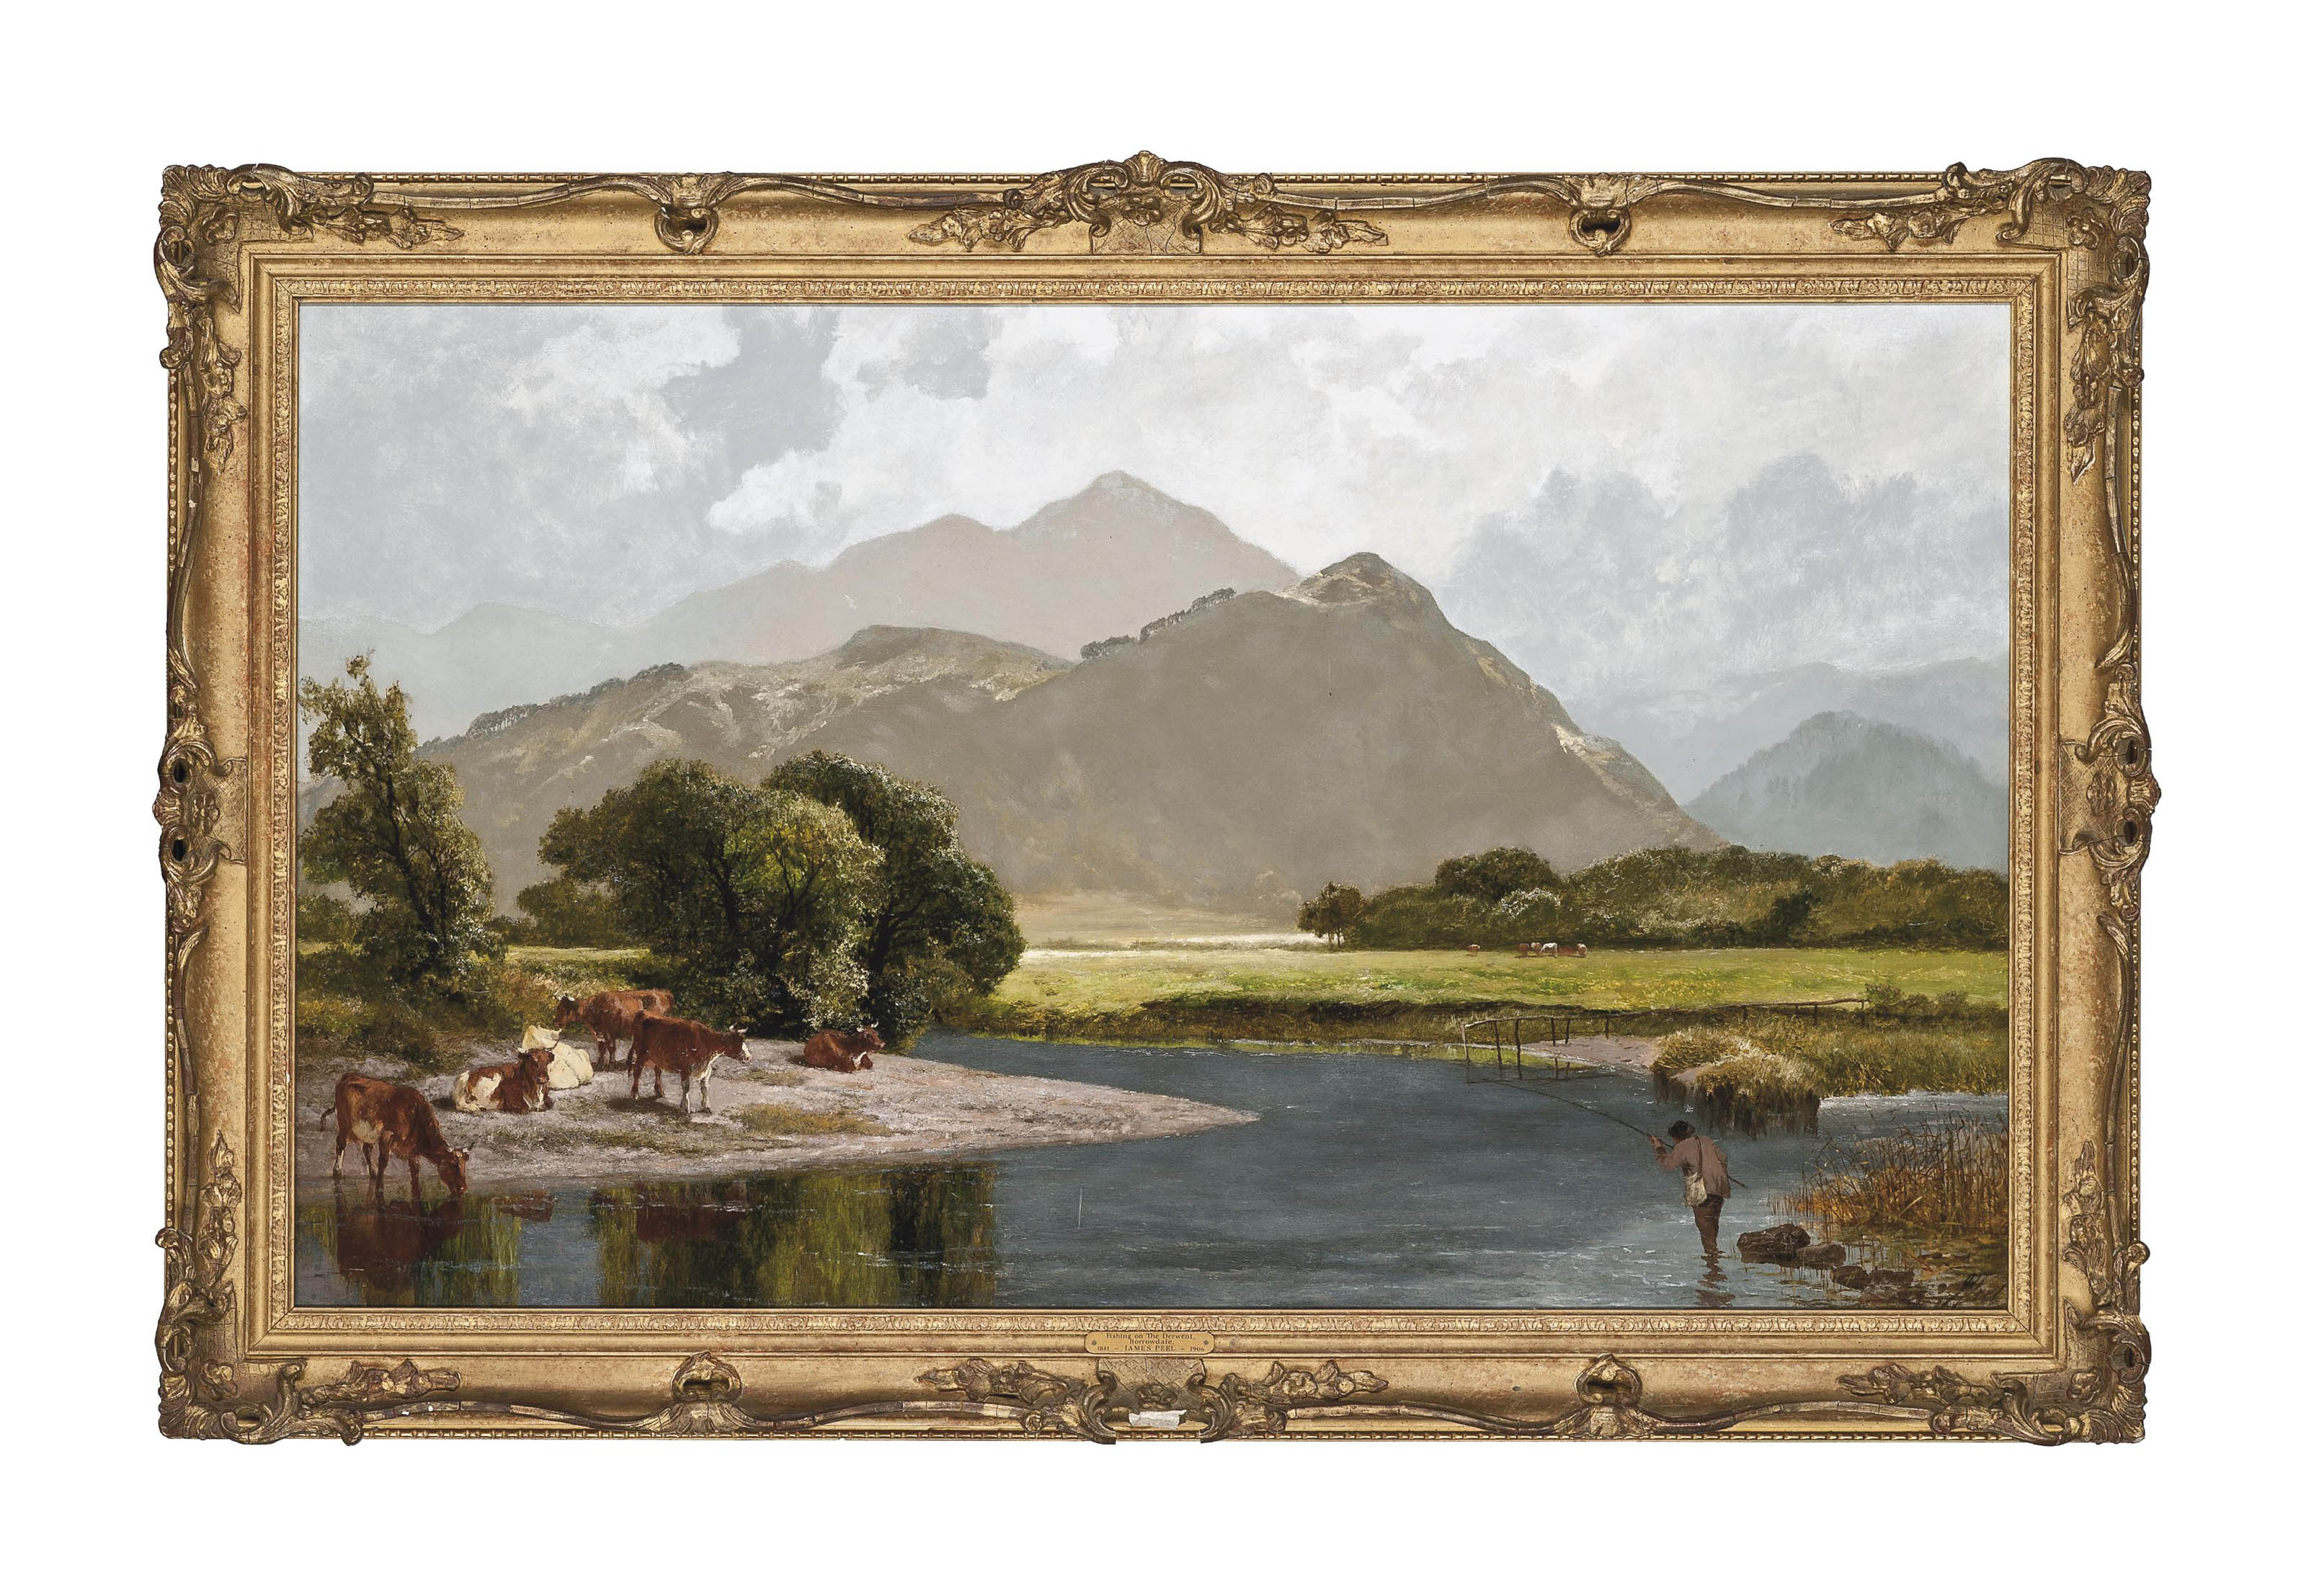 Fishing on the Derwent, Borrowdale